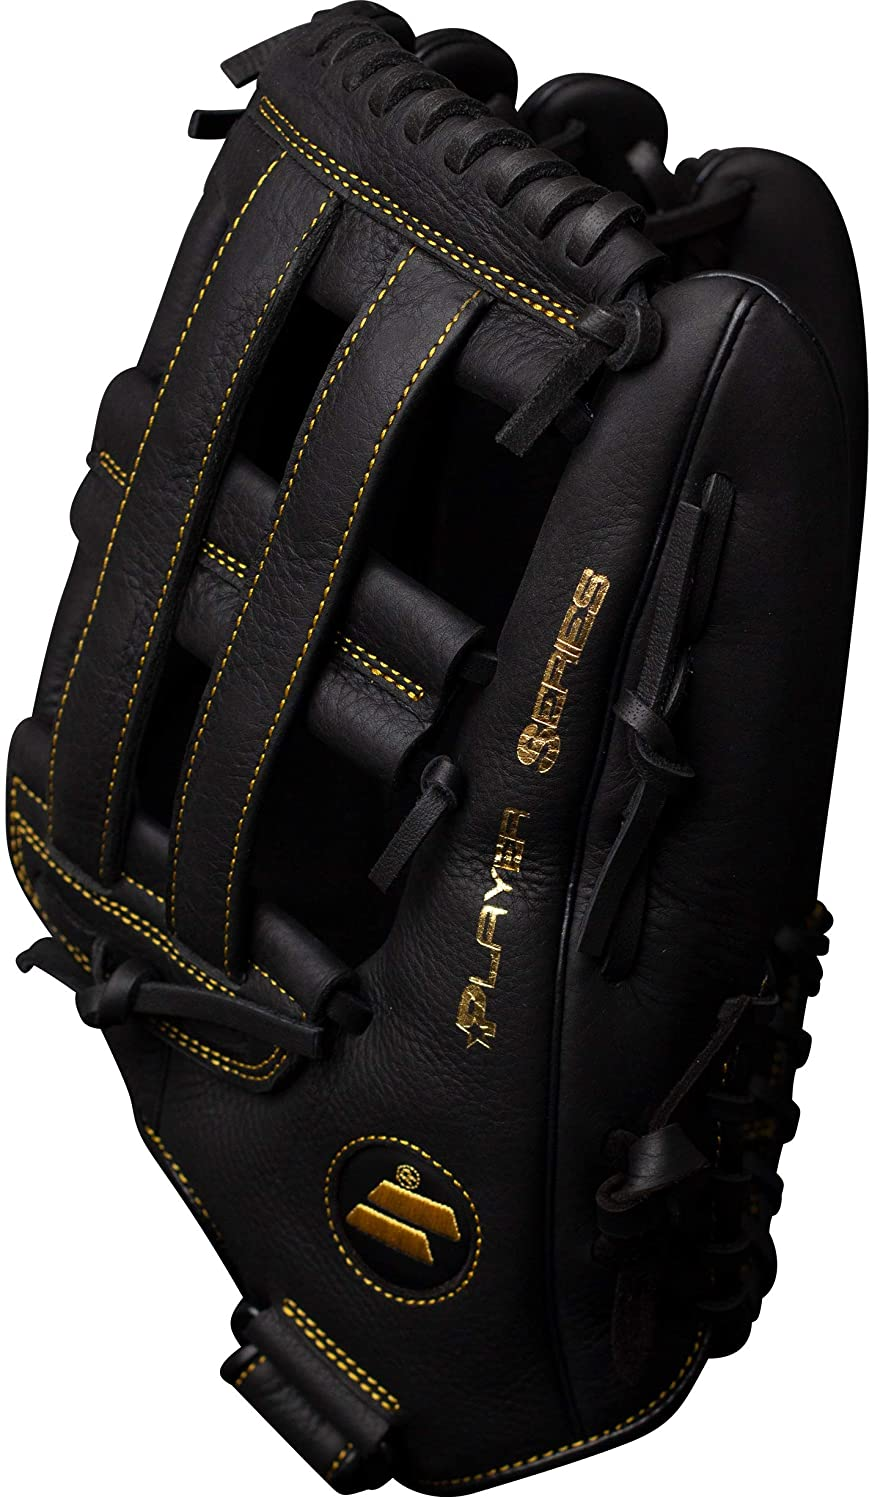 worth-player-series-13-5-inch-h-web-slowpitch-softball-glove-right-hand-throw WPL135-PH-RightHandThrow Worth 658925043260 Player series from Worth is a Slow Pitch softball glove featuring